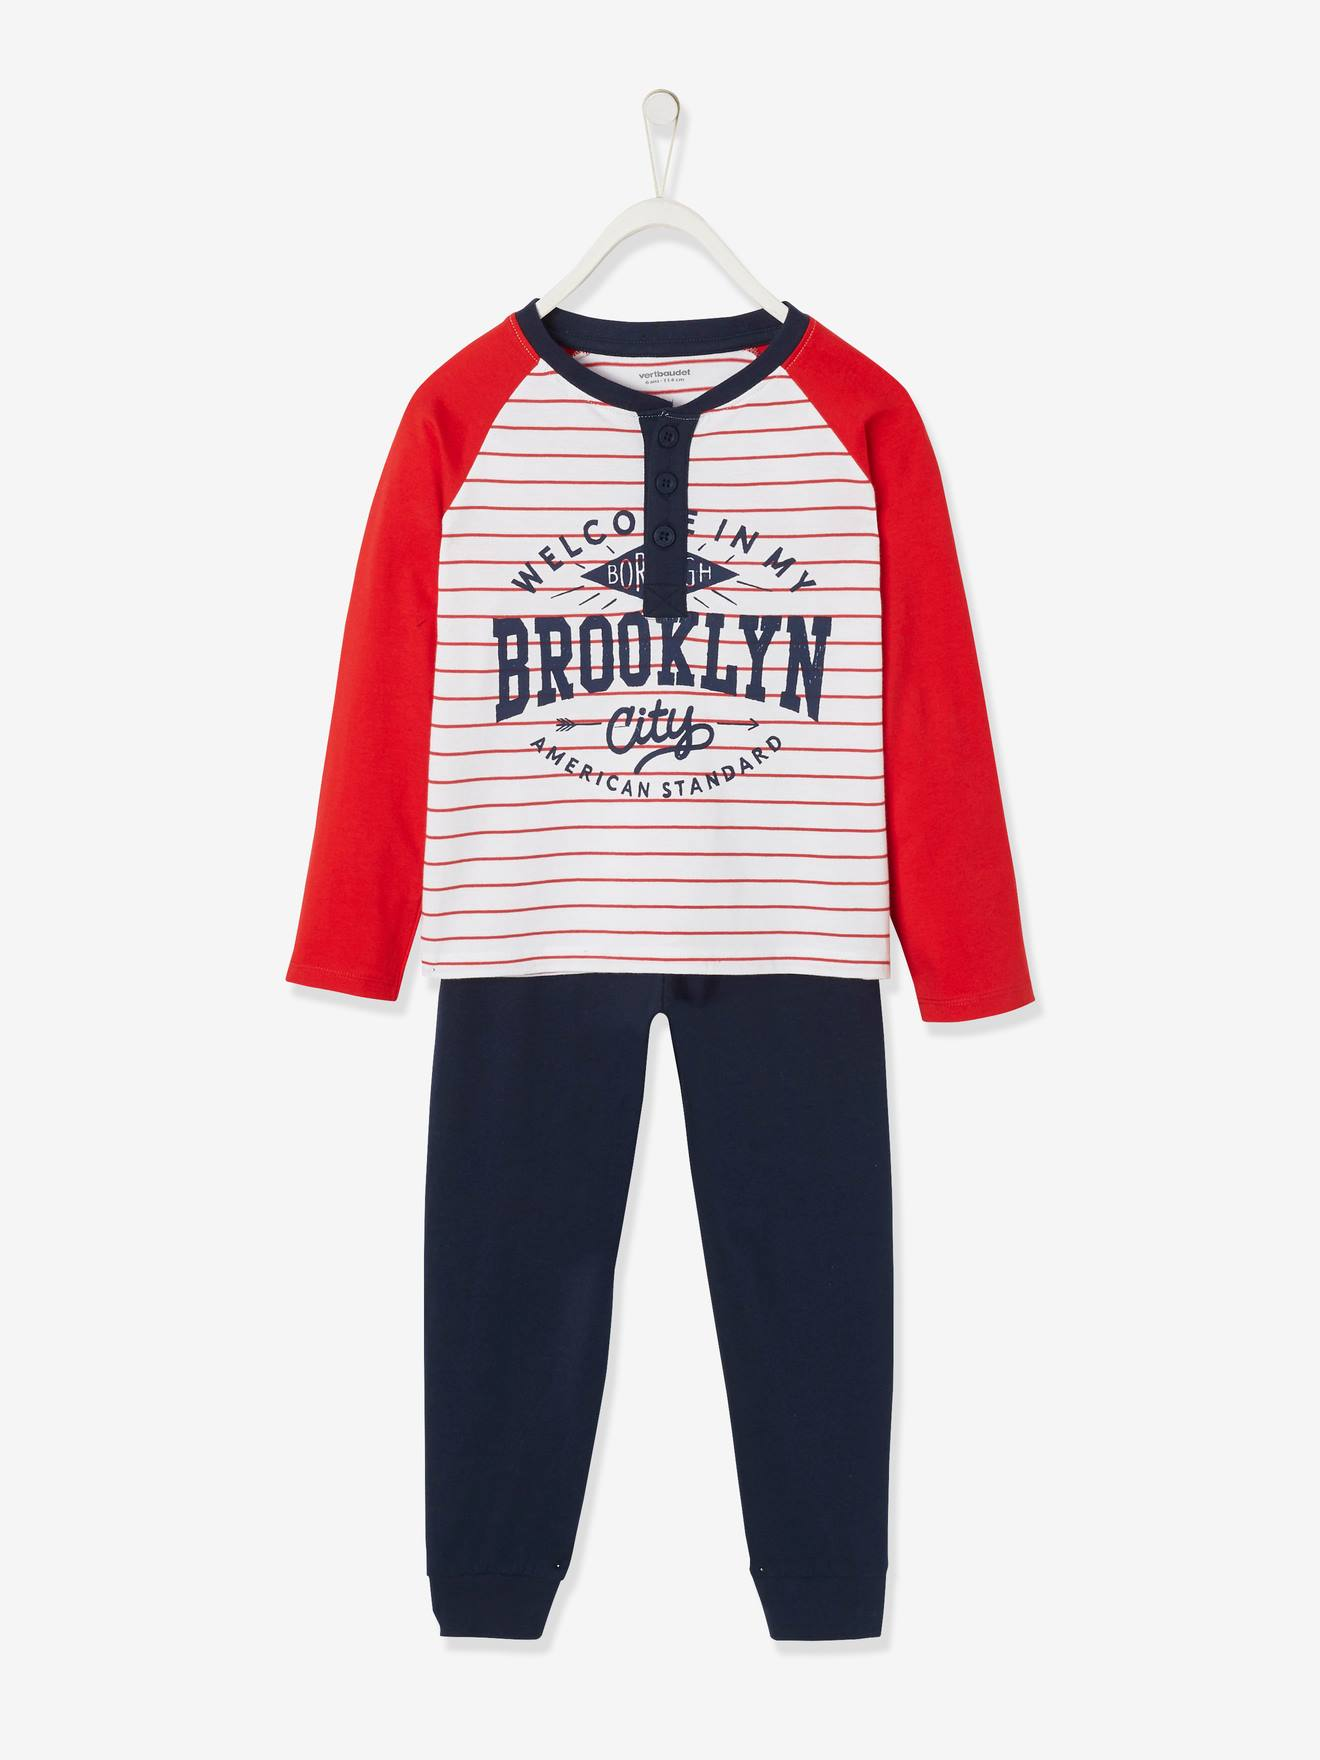 Cool NYC Brooklyn 75 Girls Long Pyjamas Pjs 9 to 15 Years